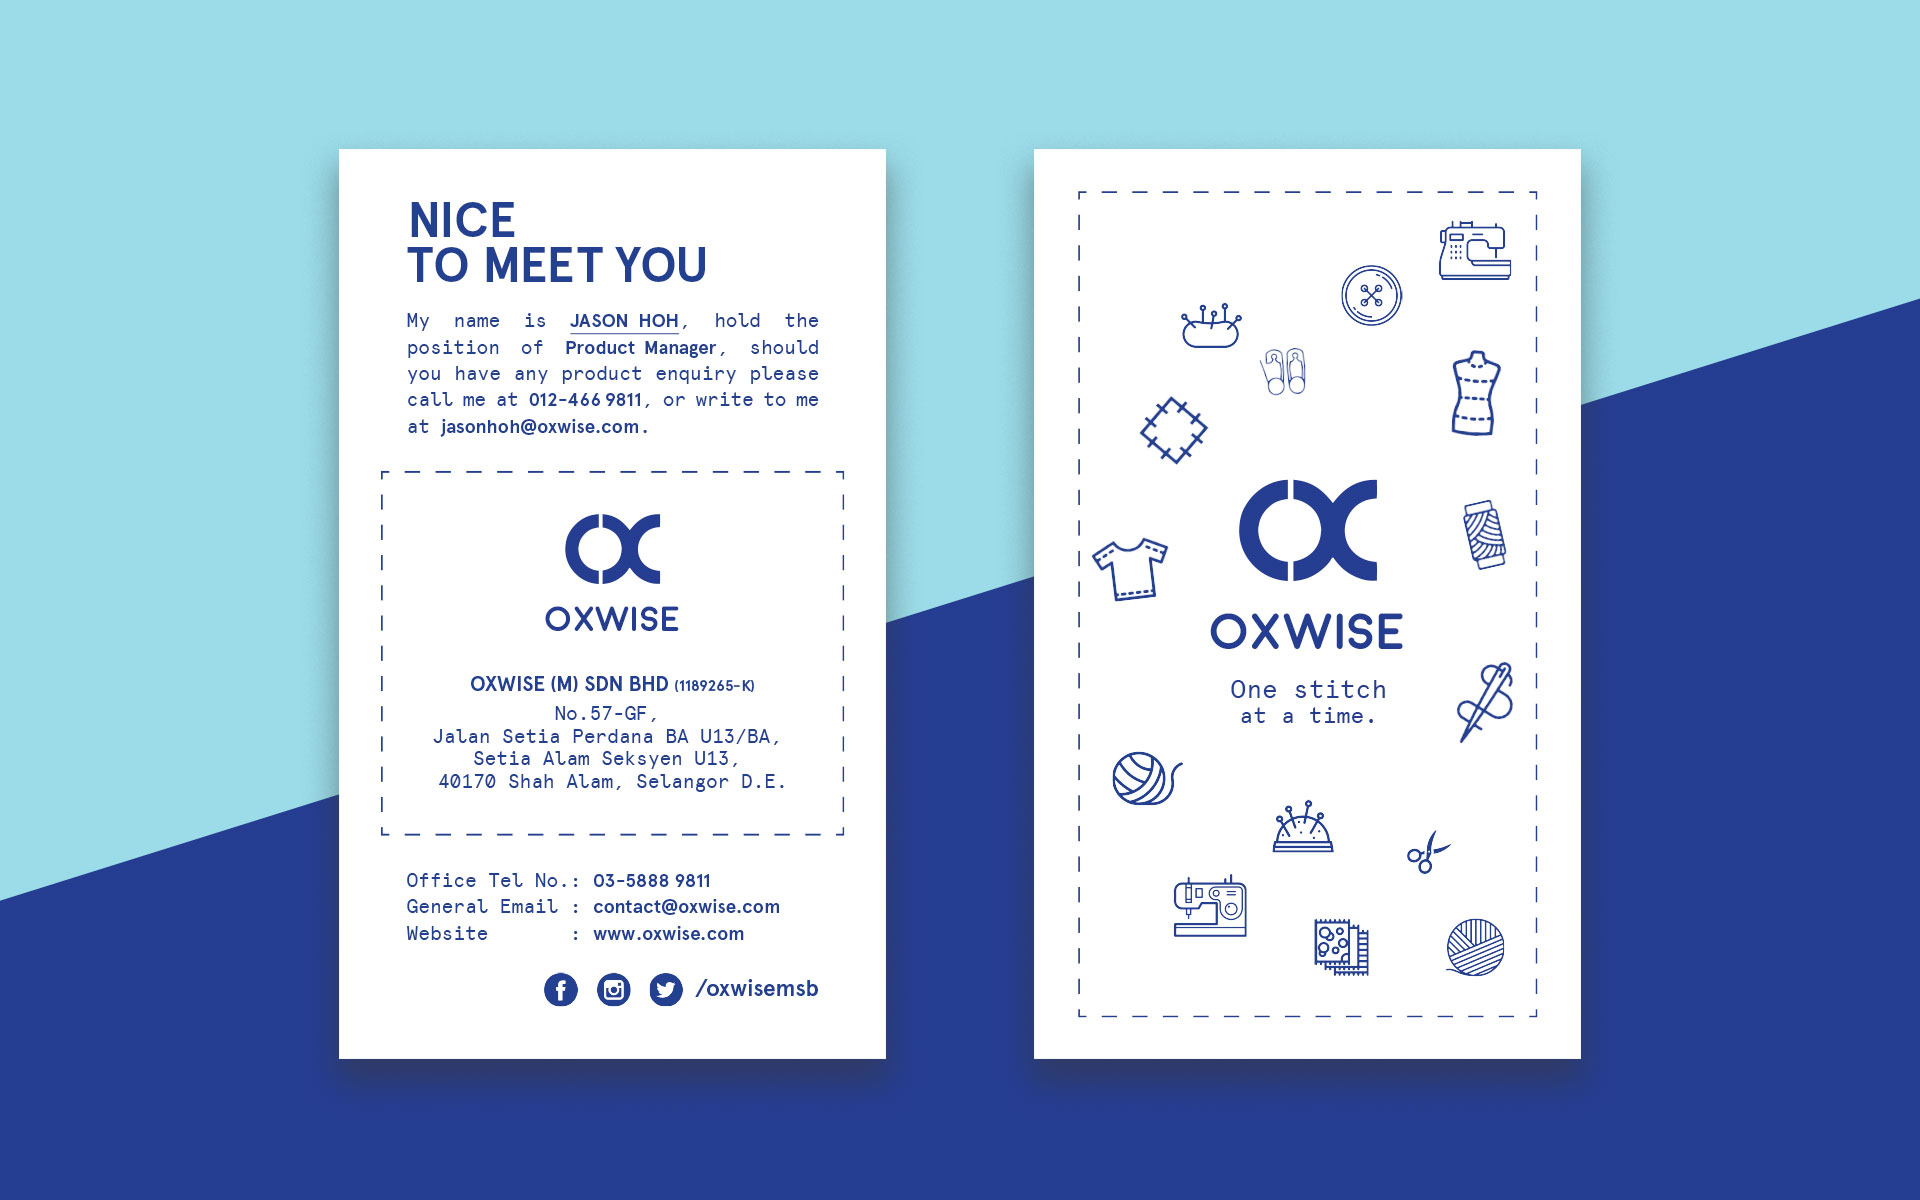 oxwise (m) sdn bhd business card design